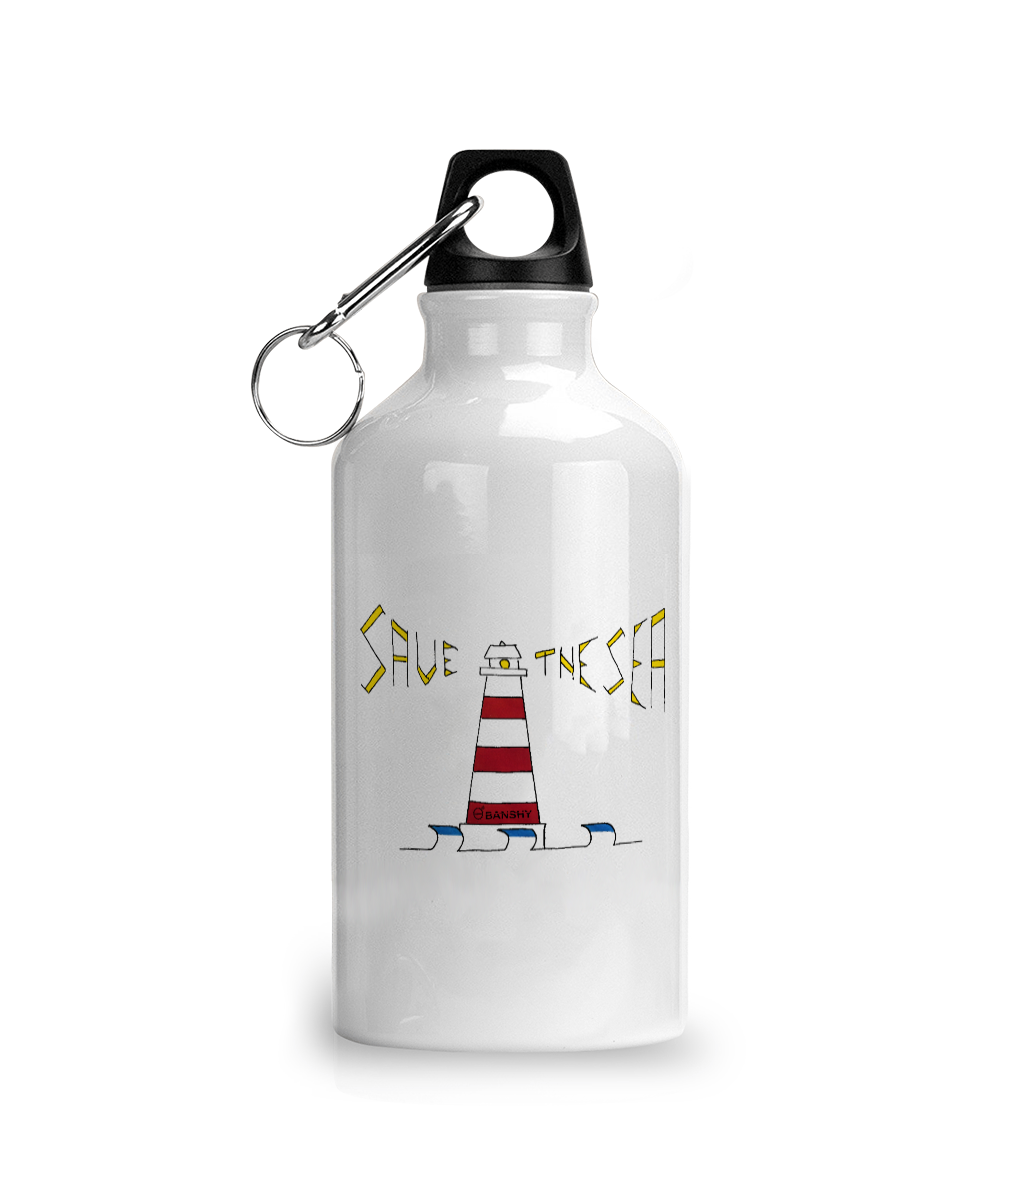 Lighthouse - Mugs & Drinkware - [variant_title] - 100% cotton - Banshy